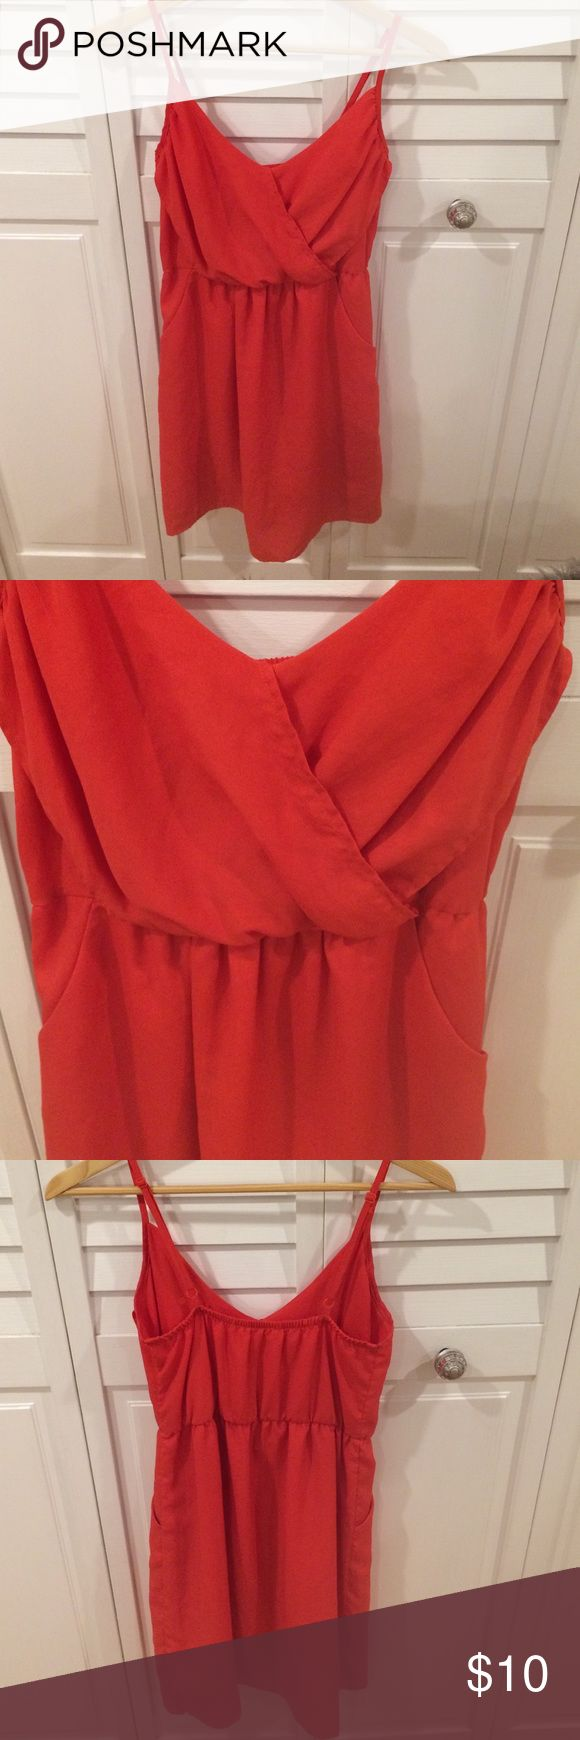 Reddish orange short casual dress Lush brand reddish orange dress. Light material, with pockets, perfect for warm weather. Draped chest detail is very flattering. Size XS. Lush Dresses